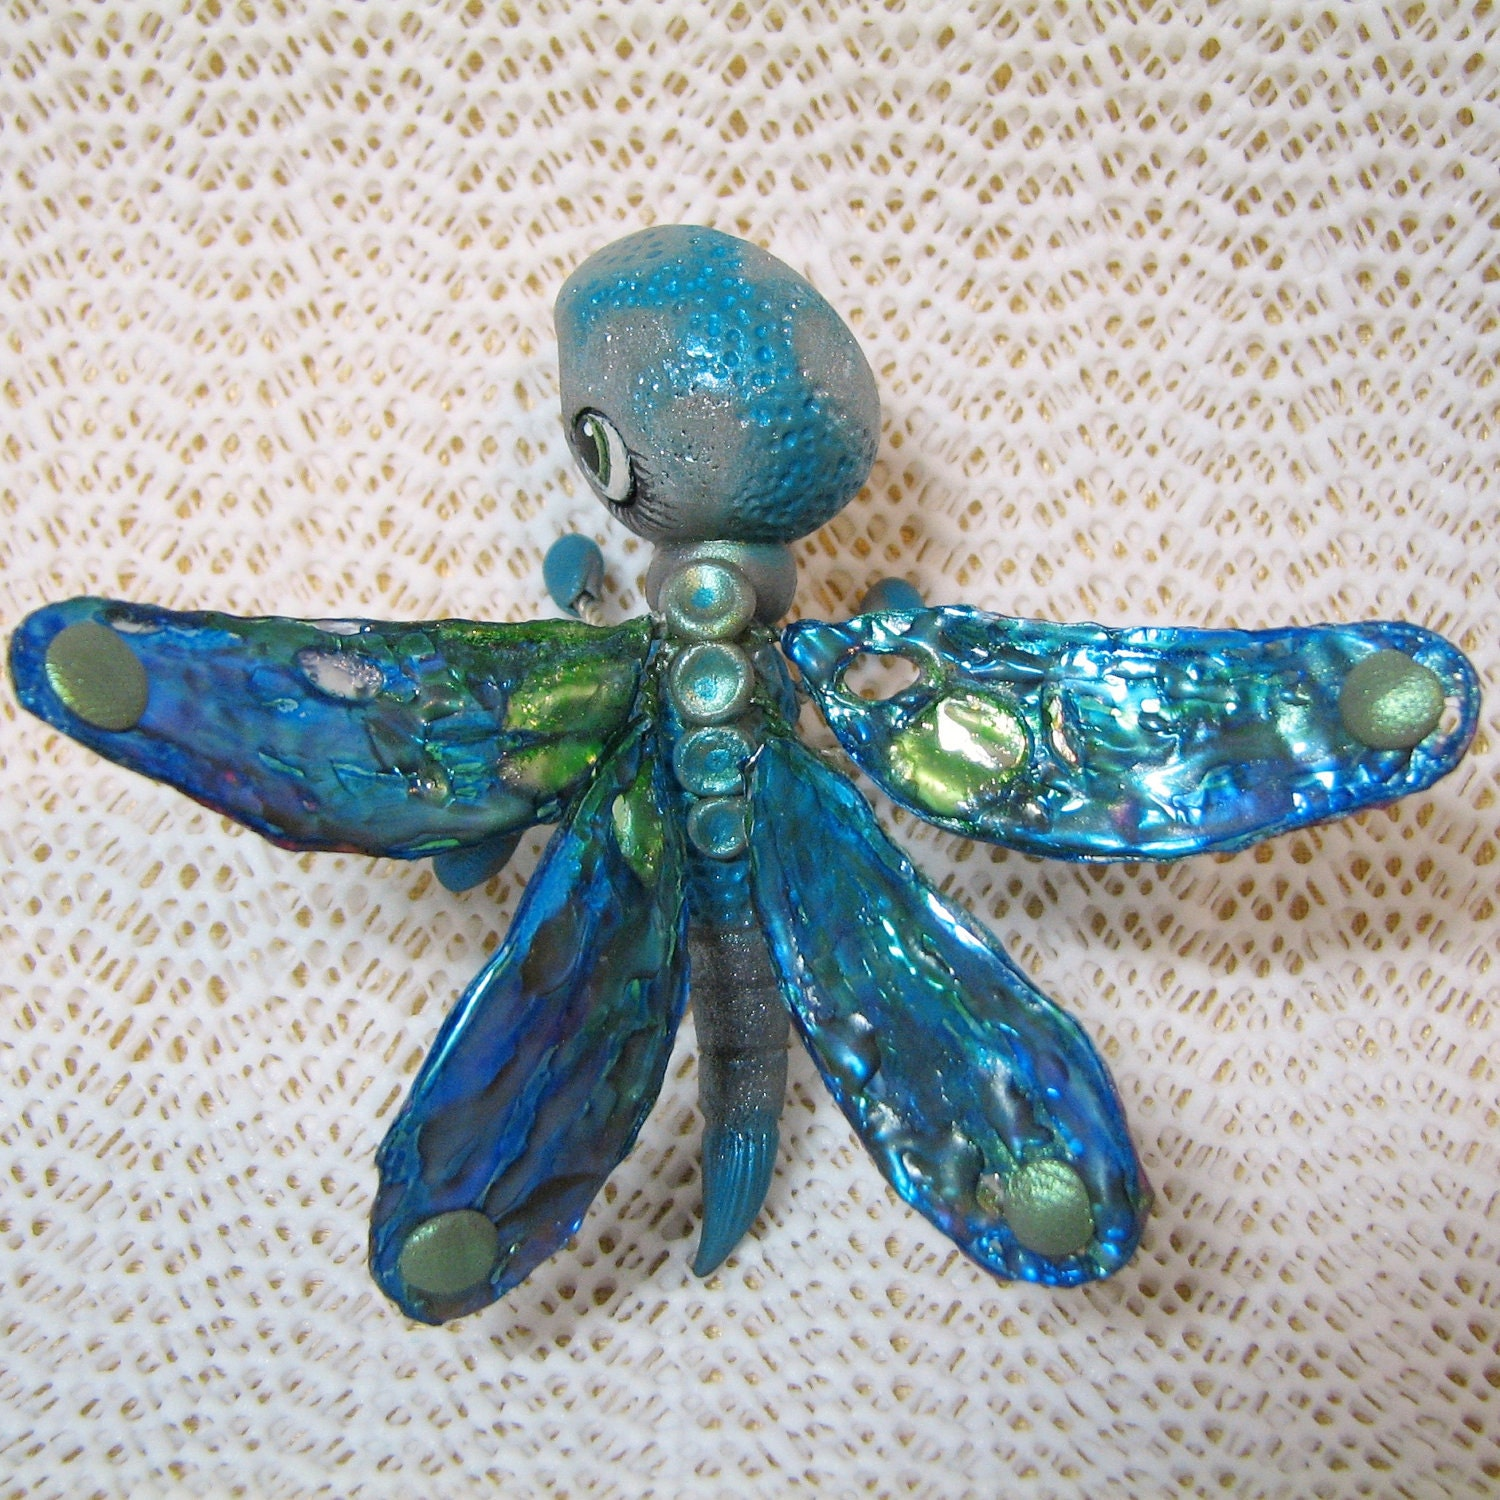 Kawaii Chibi Dragonfly Chibitude                                   Figurine Polymer Clay Hand Made